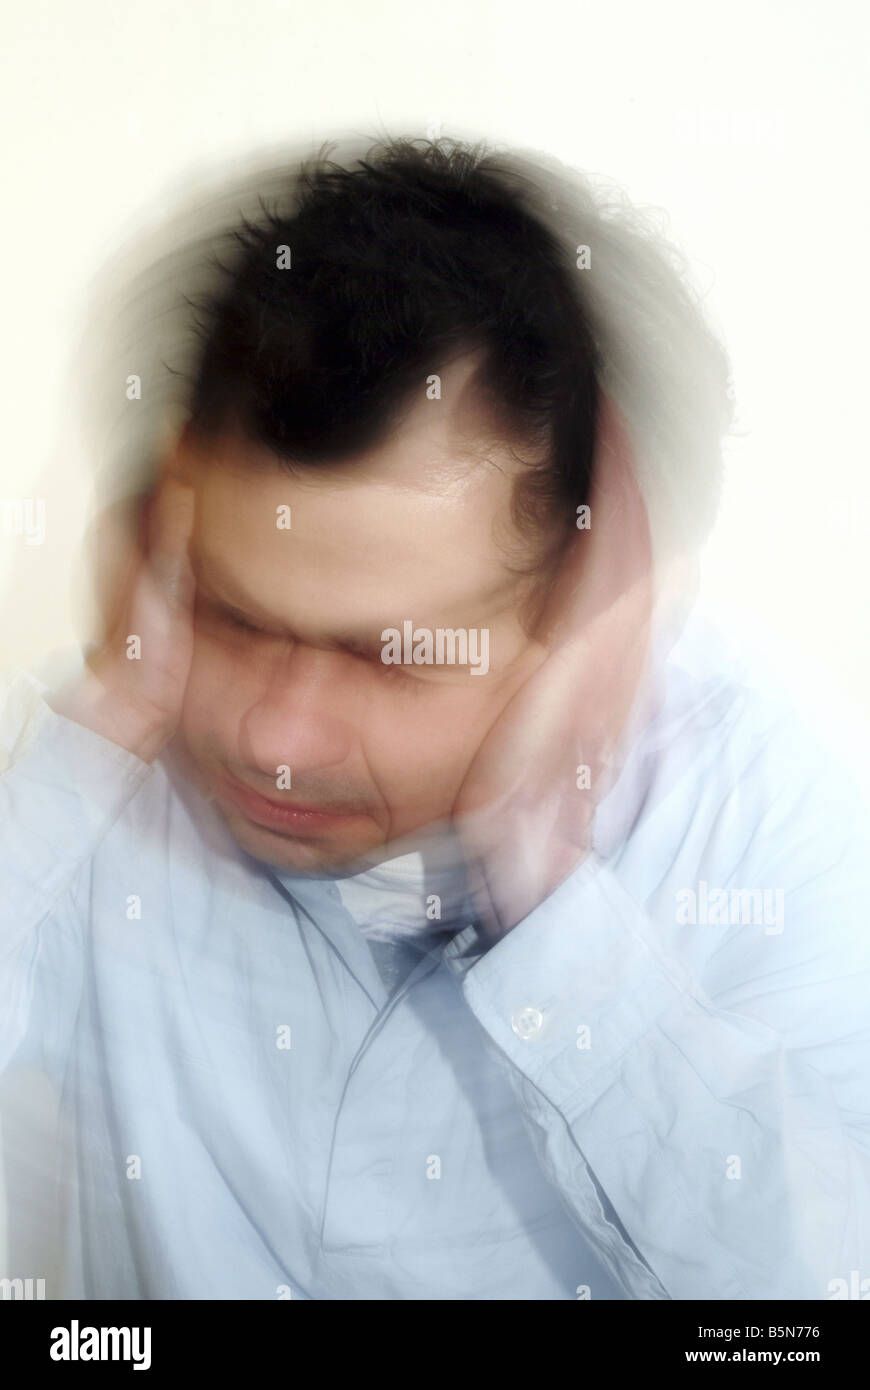 A man with a blurred face - Stock Image